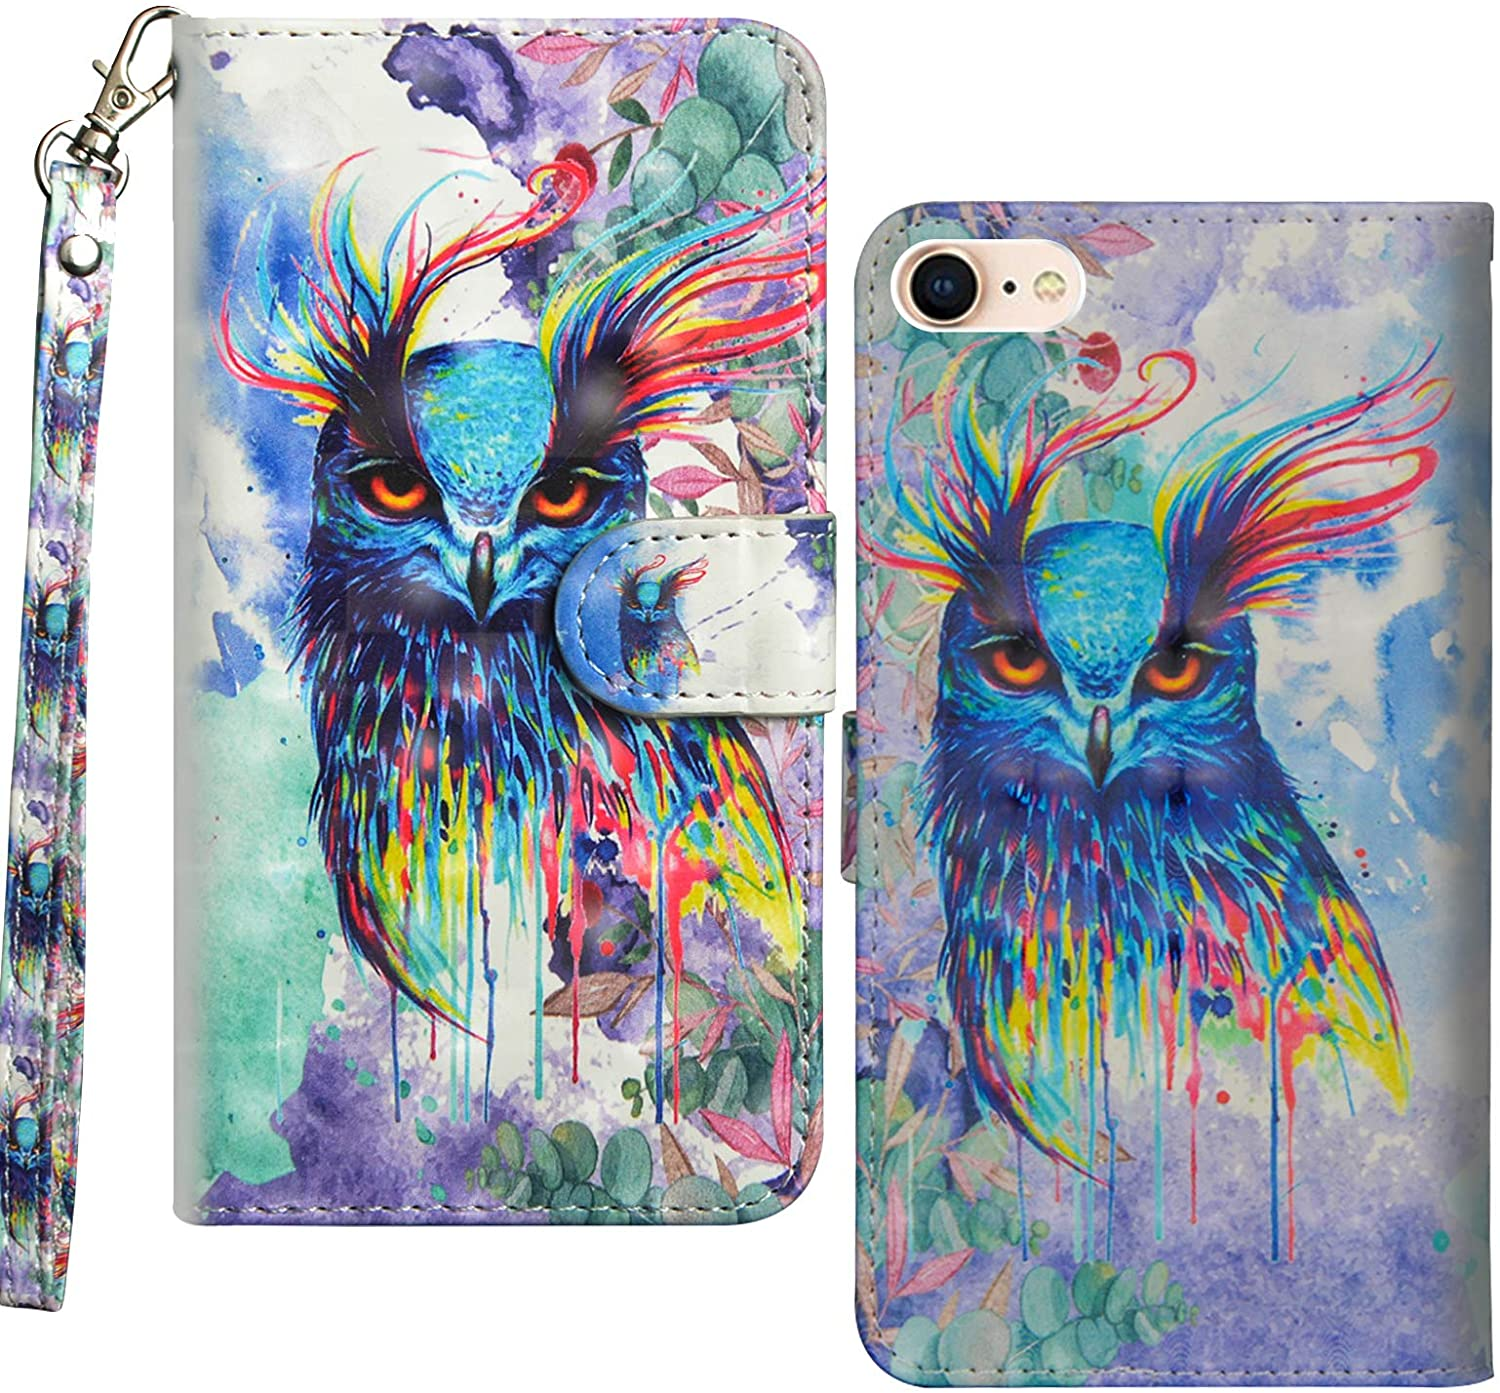 SZYZ iPhone SE 2020 Wallet Case,iPhone 7 Case, iPhone 8 Case 3D Painting Leather Flip Kickstand Case with Magnetic Closure and Card Slots Holder Cover for iPhone SE2020/7/8,Owl Painting